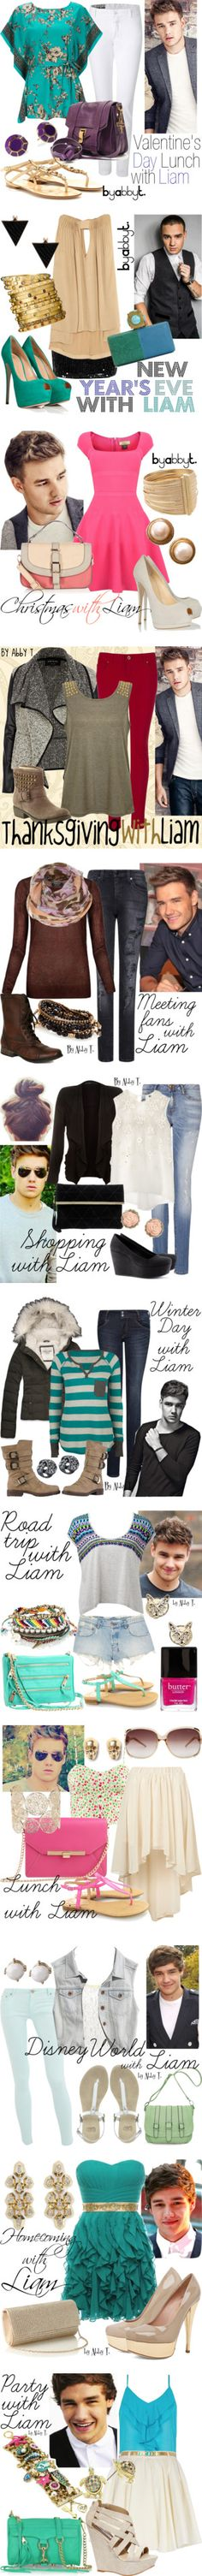 """Liam Payne Inspired Outfit"" by abbytamase on Polyvore"